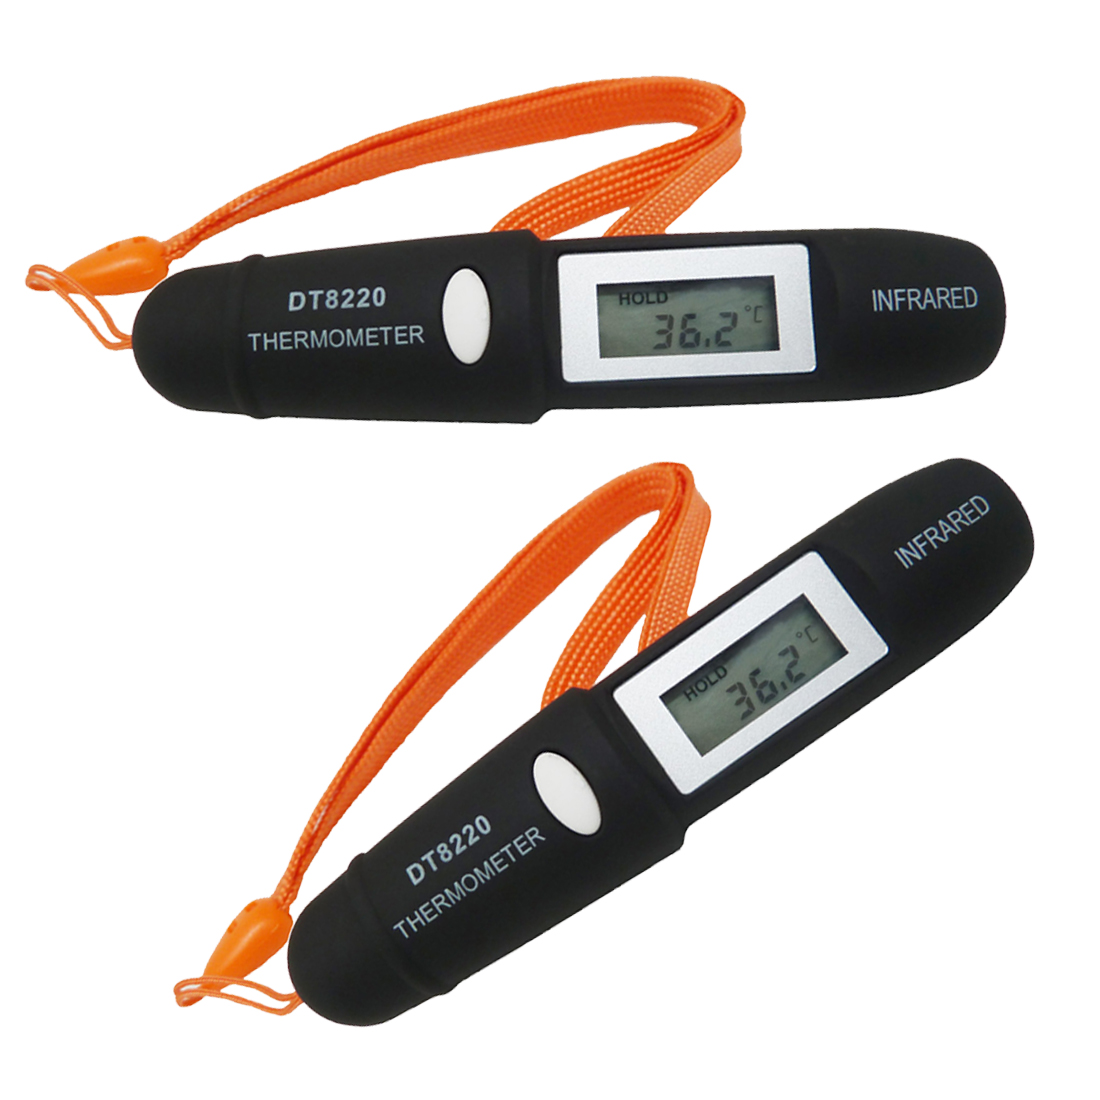 Pen Type Mini Infrared Thermometer IR Temperature Measuring LCD Display Measuring Tools -50C~220C